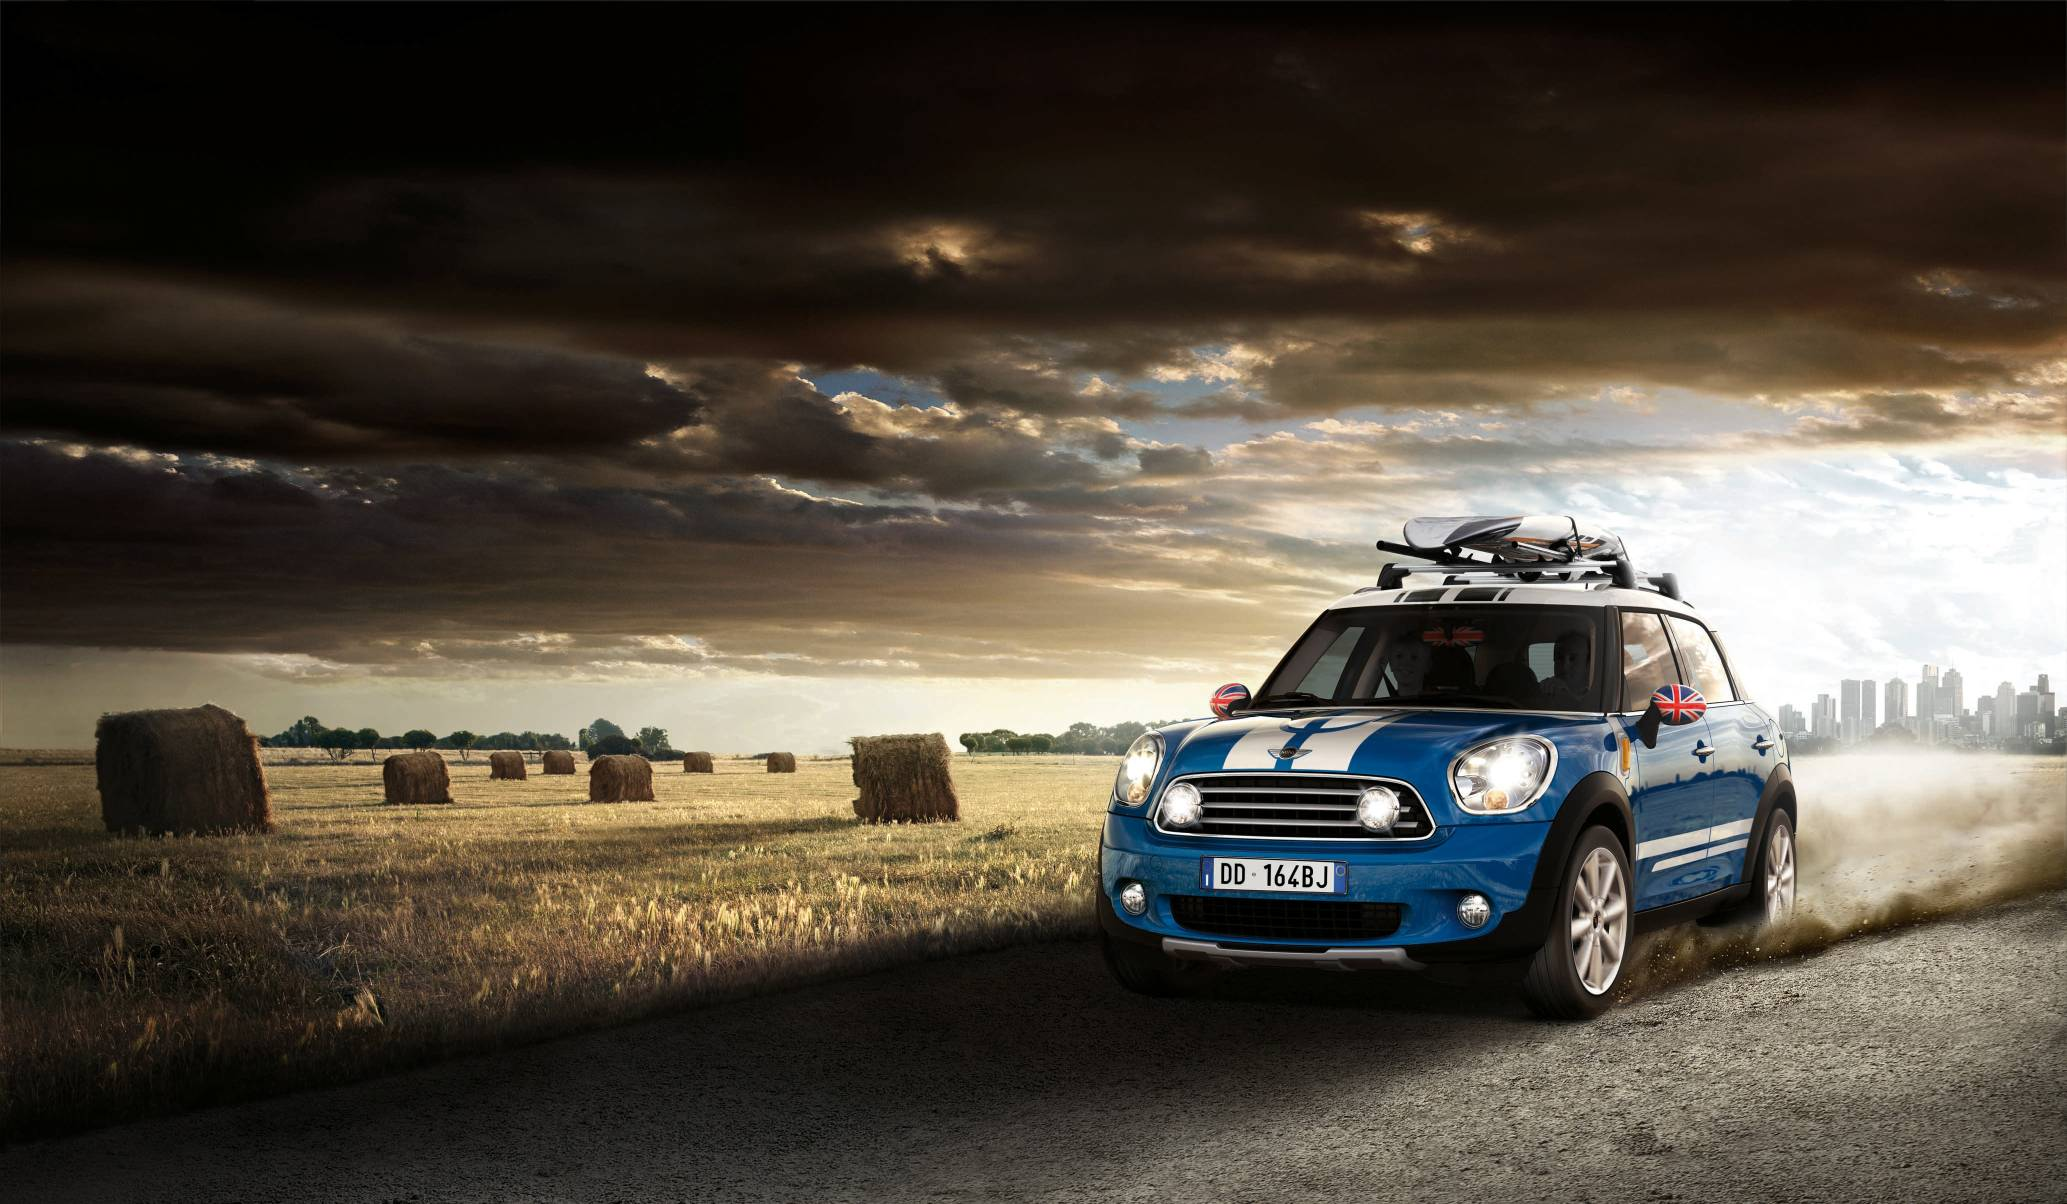 MINI Cooper Countryman Wallpapers Widescreen Free 22536